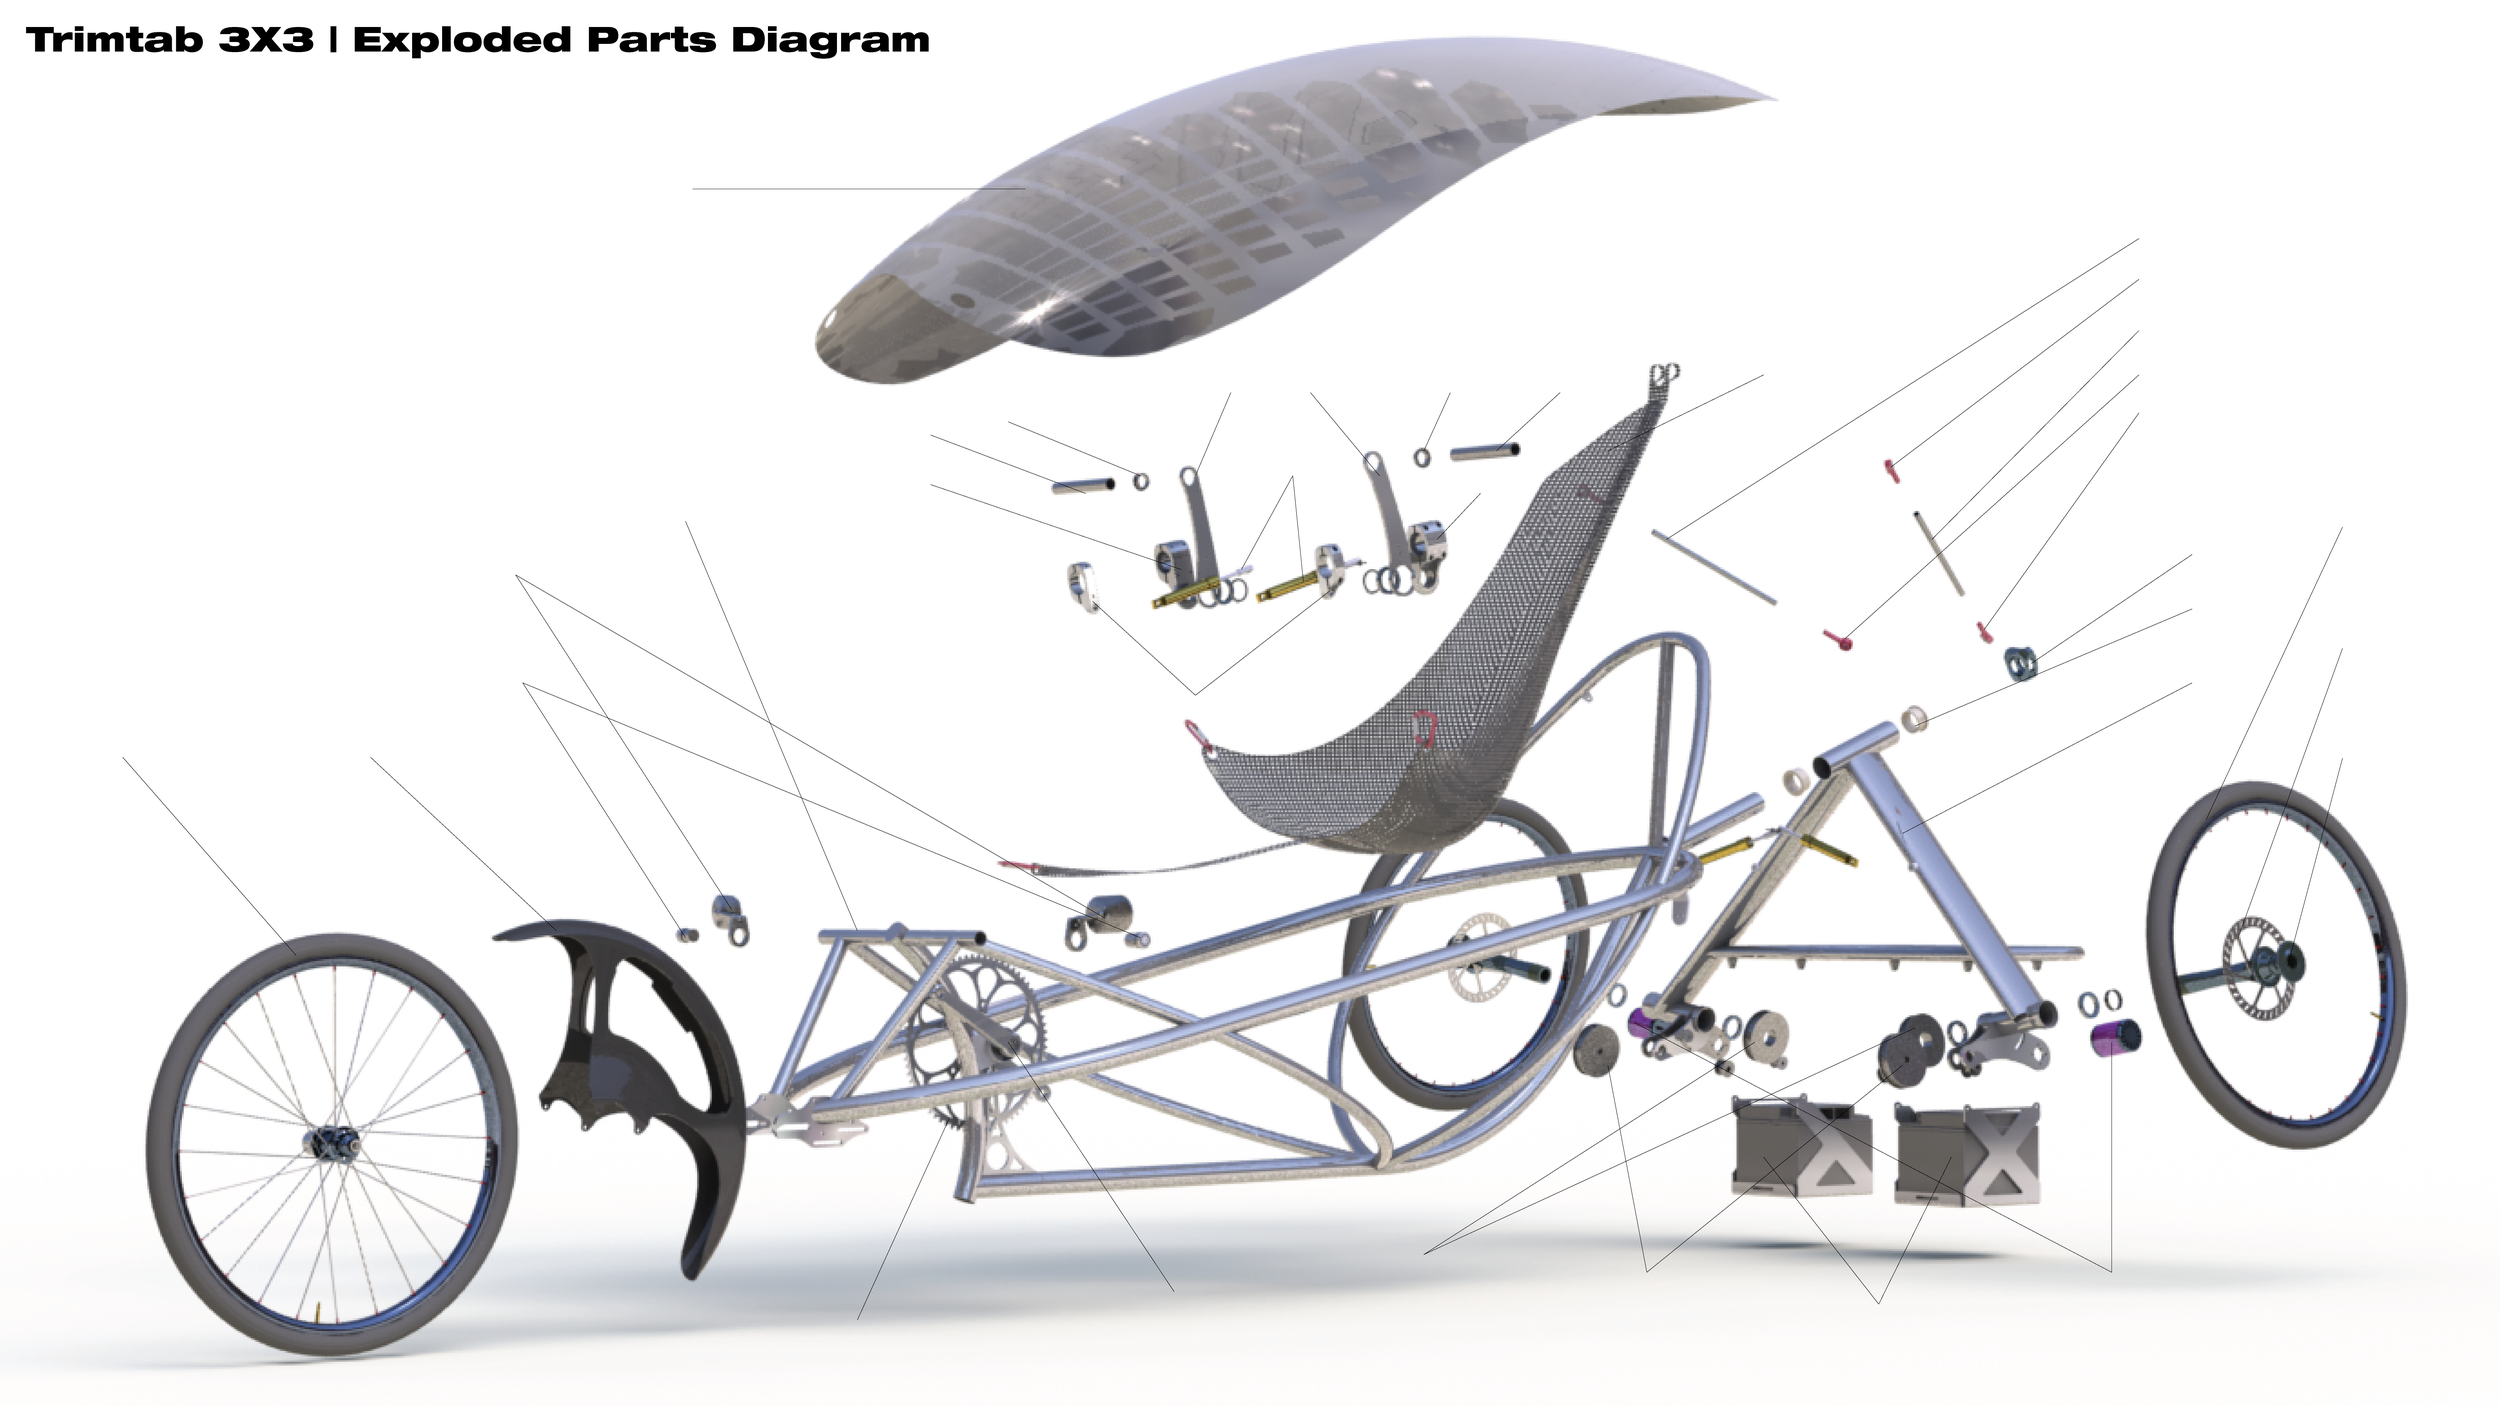 This image shows an exploded view of the vehicle, without skins.